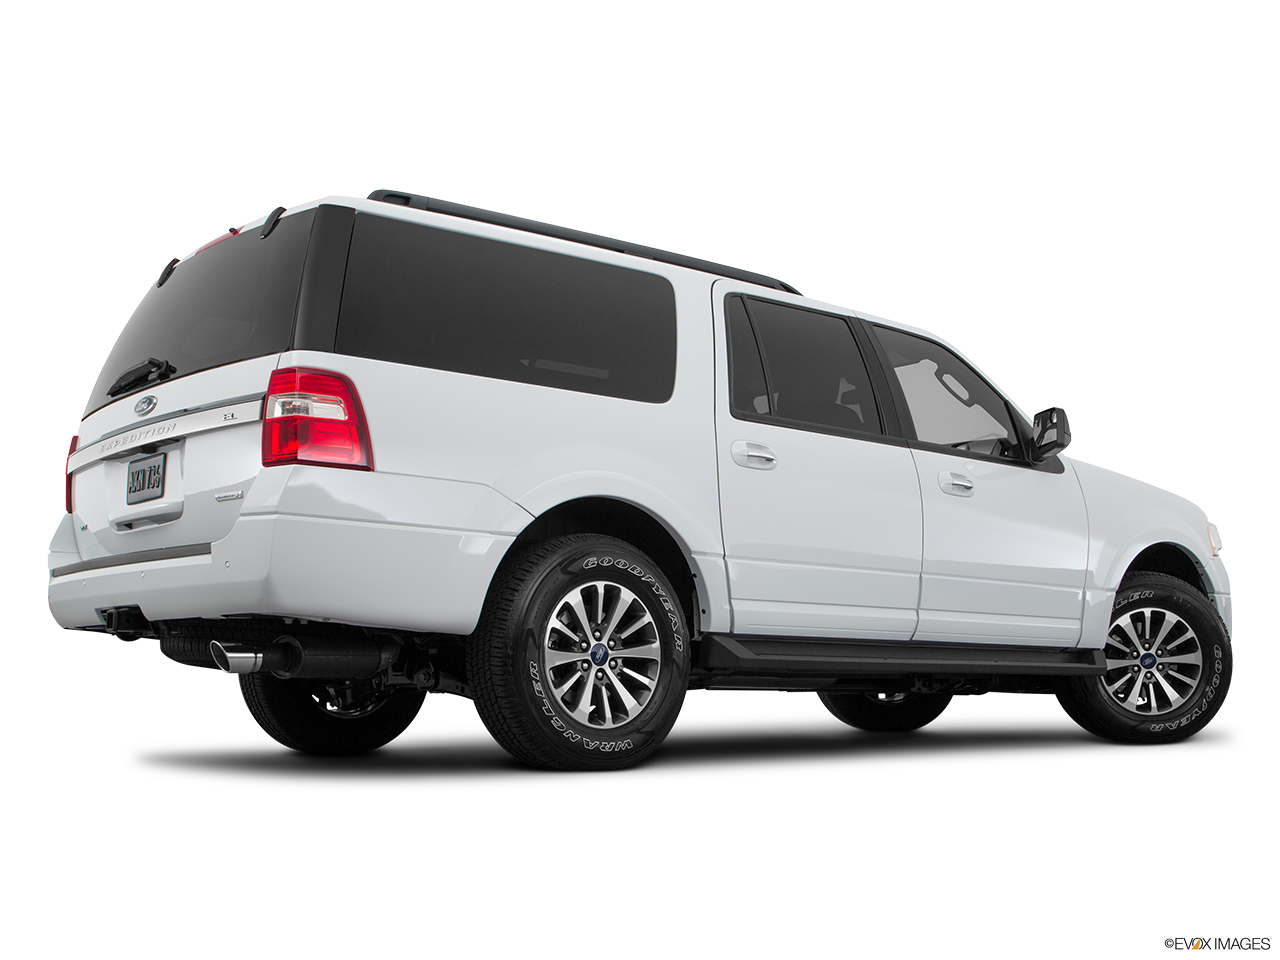 Ford Expedition El 2016 3 5l Xlt Bahrain Low Wide Rear 5